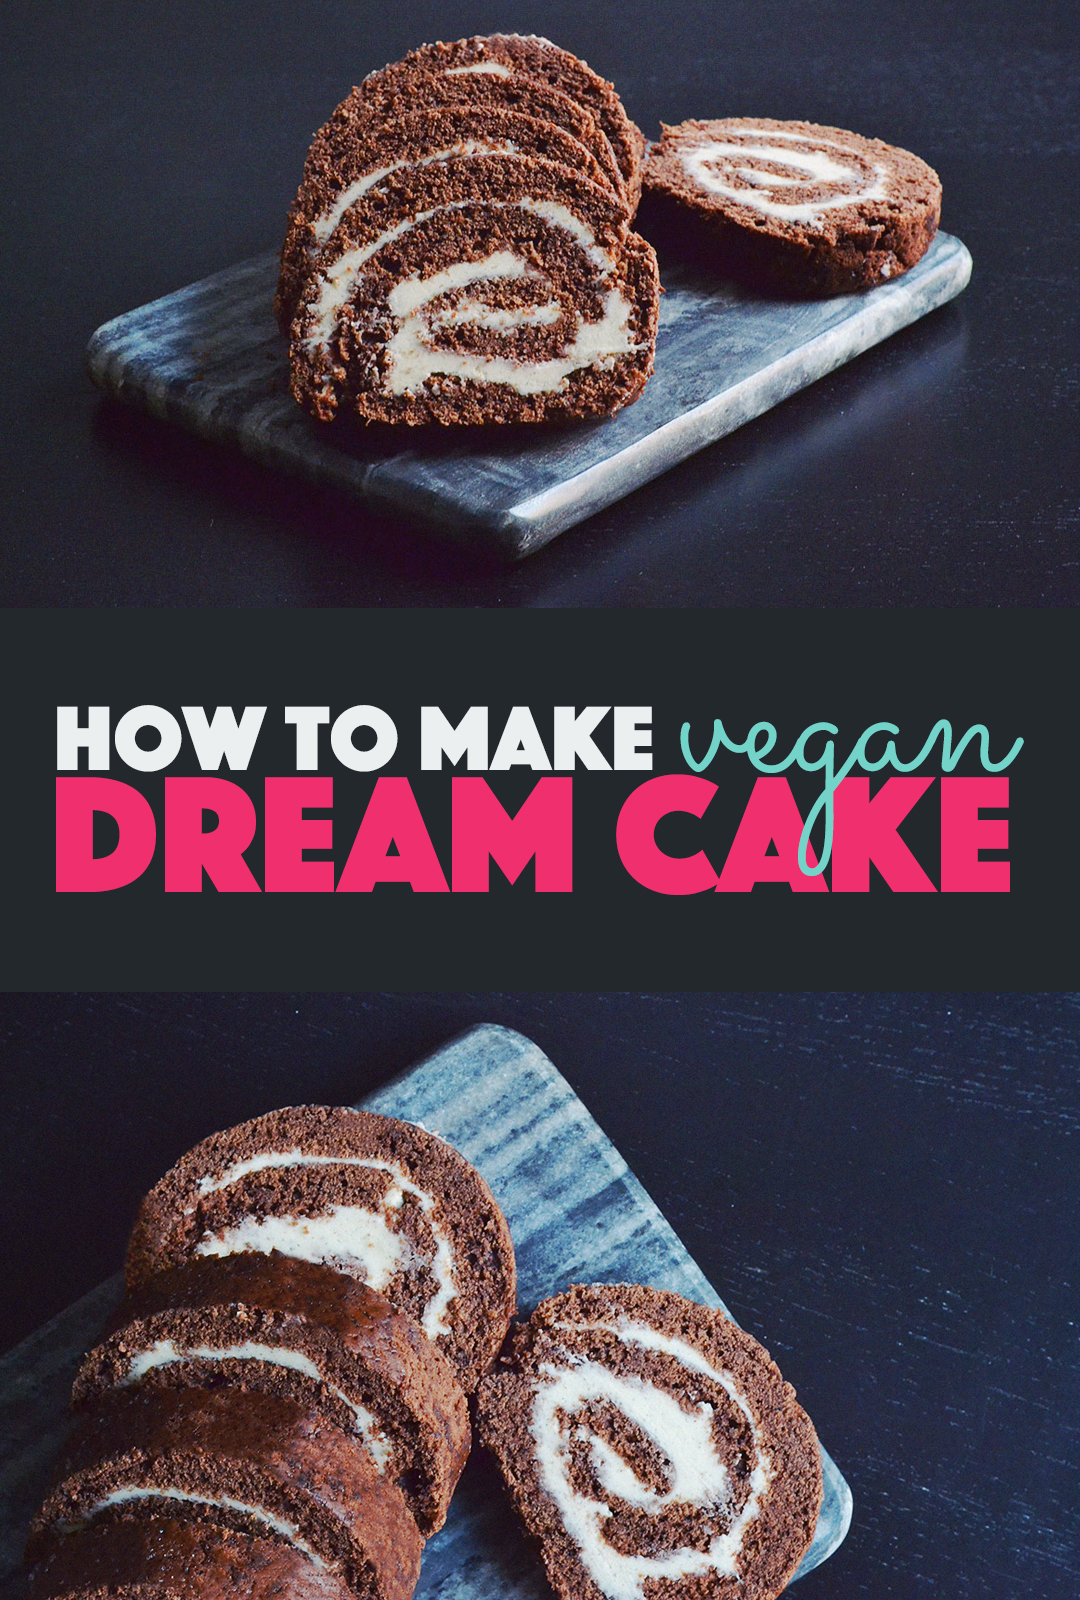 How to Make Vegan Dream Cake | http://BananaBloom.com #vegan #baking #cake